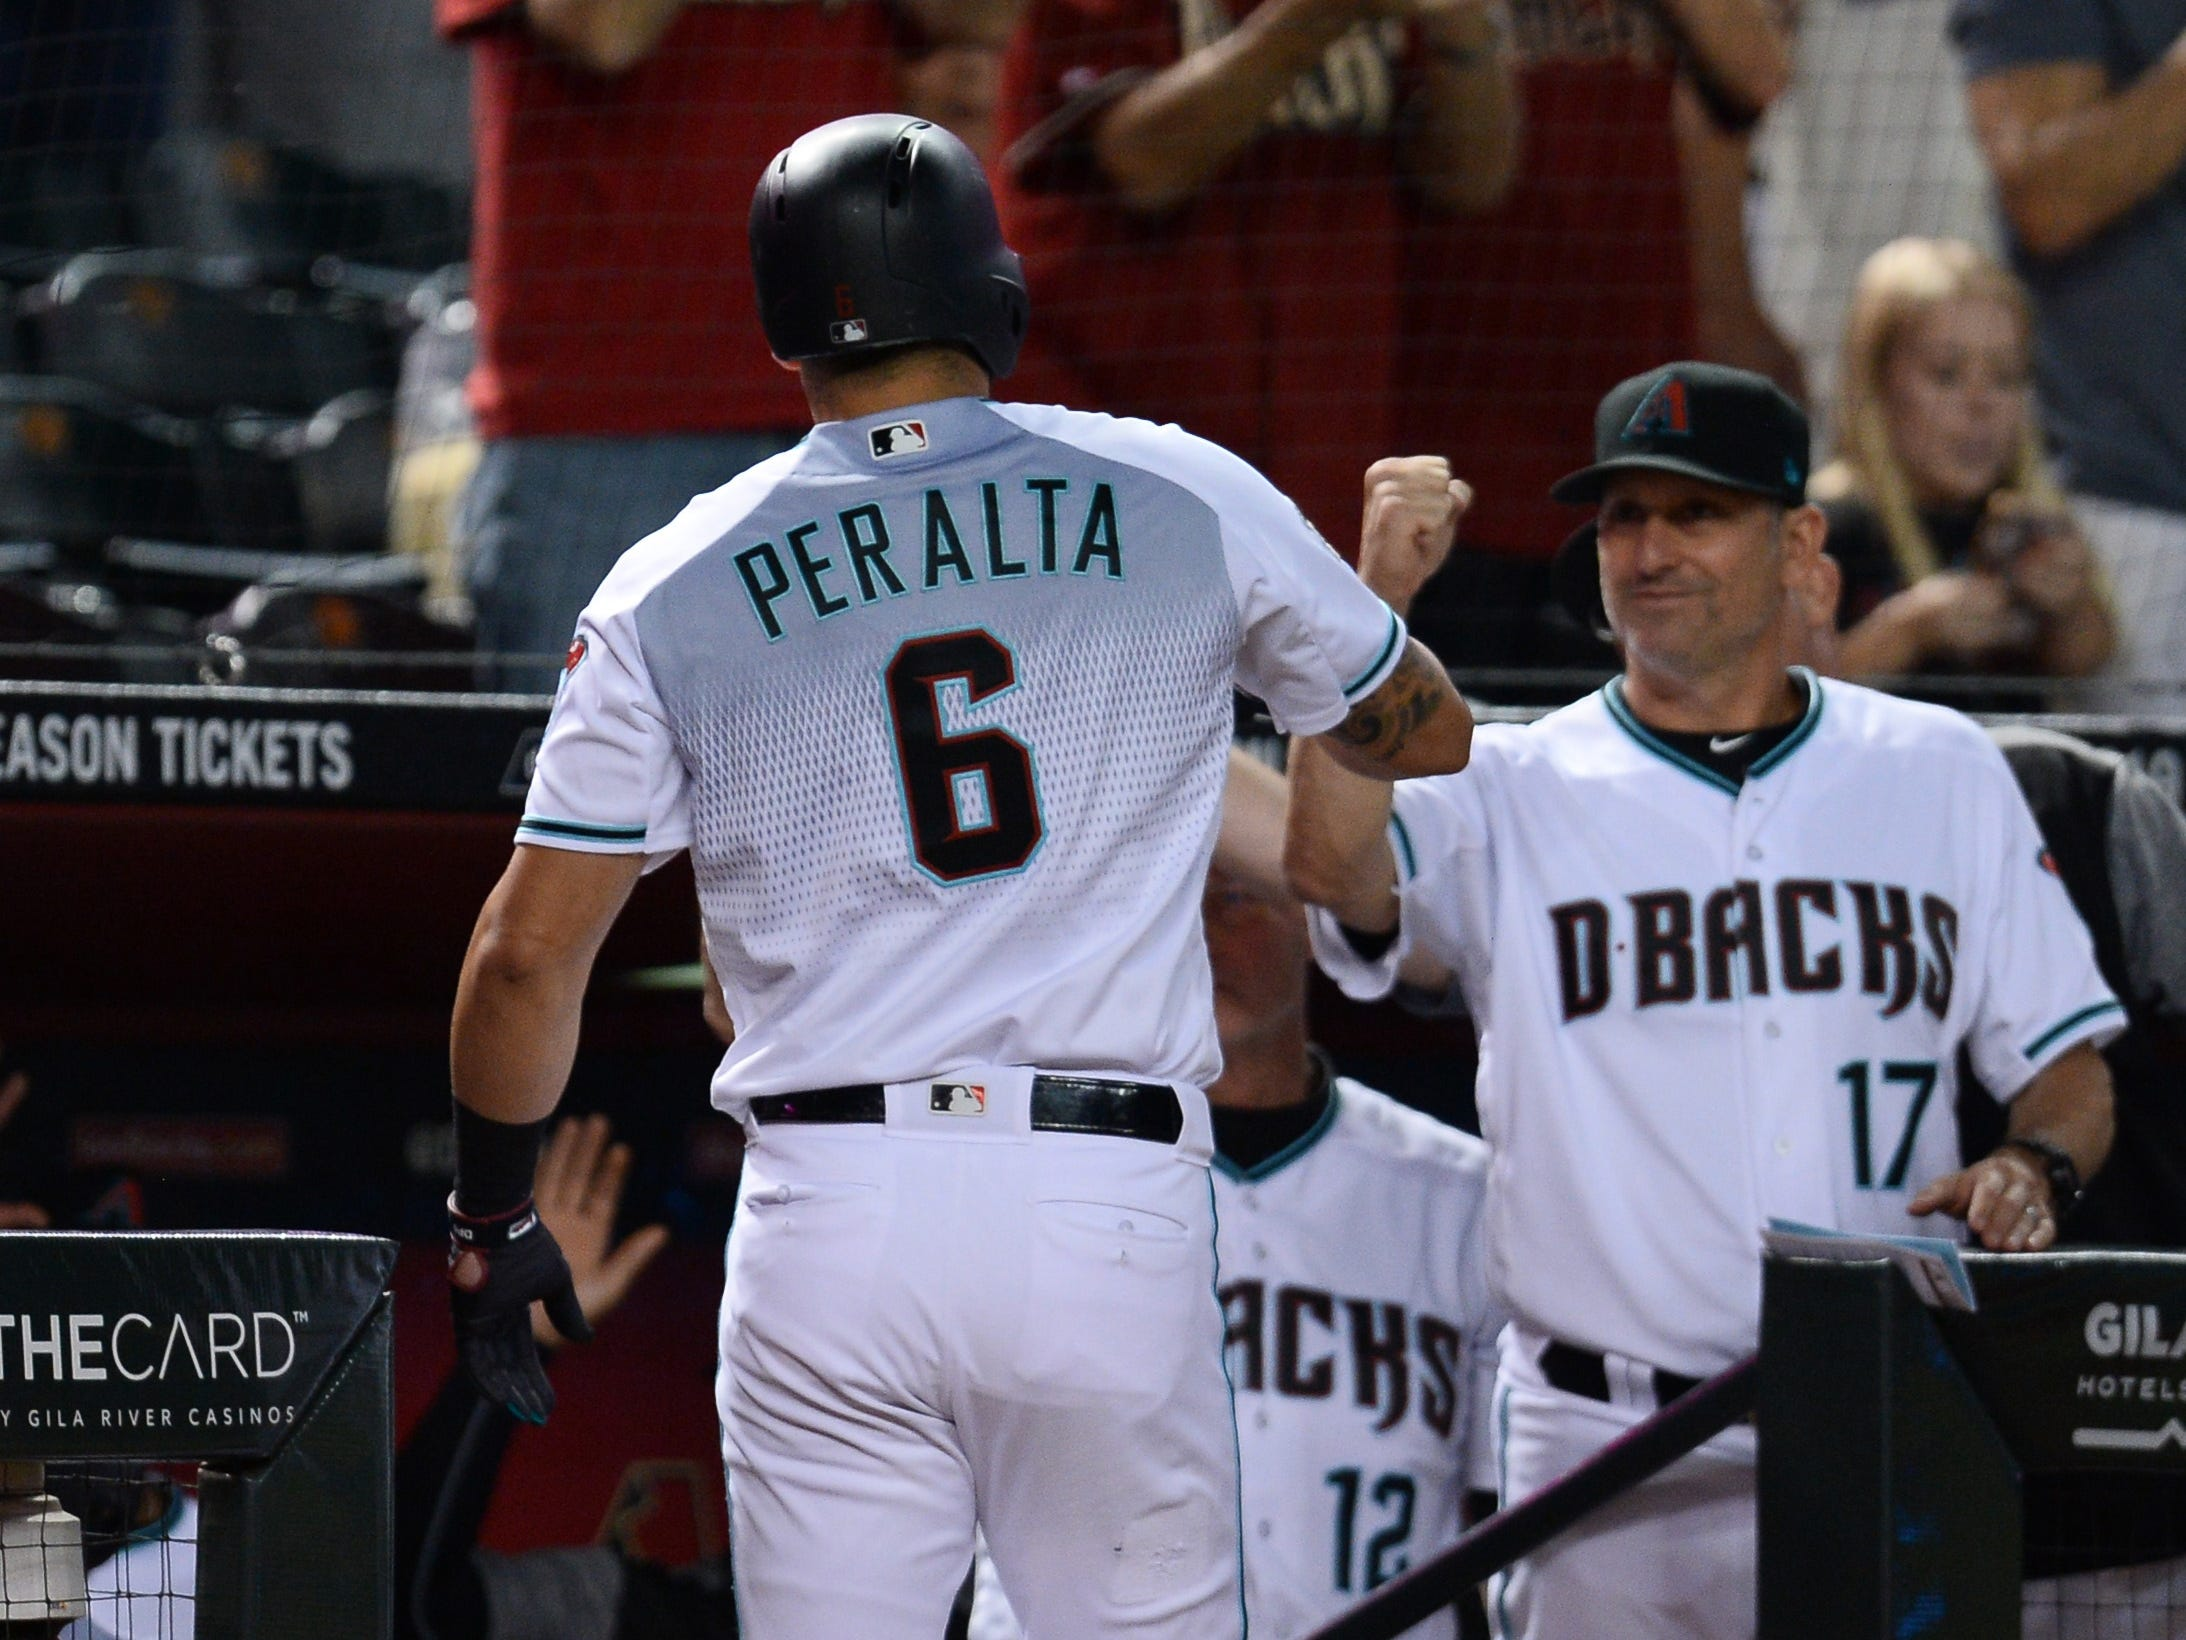 Sep 21, 2018; Phoenix, AZ, USA; Arizona Diamondbacks right fielder David Peralta (6) bumps fists with Arizona Diamondbacks manager Torey Lovullo (17) after hitting a solo home run against the Colorado Rockies during the first inning at Chase Field.